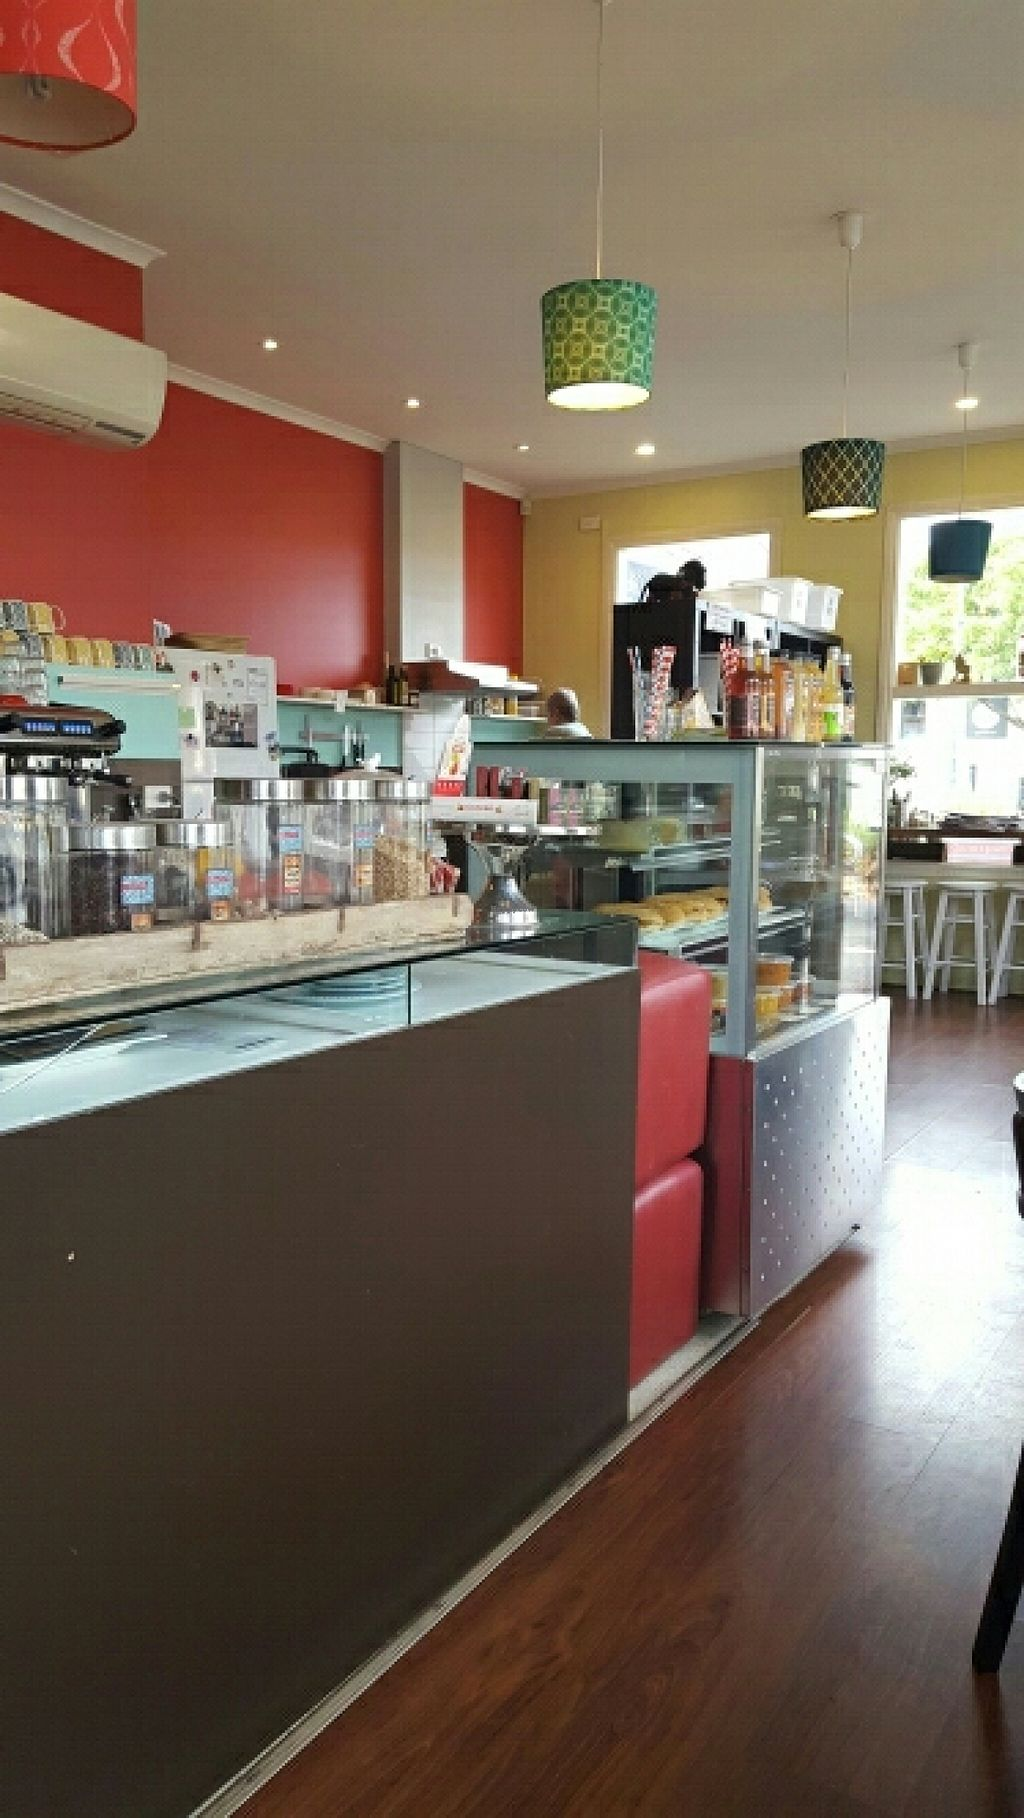 """Photo of CLOSED: Pomegranate  by <a href=""""/members/profile/jodiveganfit"""">jodiveganfit</a> <br/>Lovely decor <br/> June 6, 2016  - <a href='/contact/abuse/image/54464/152468'>Report</a>"""